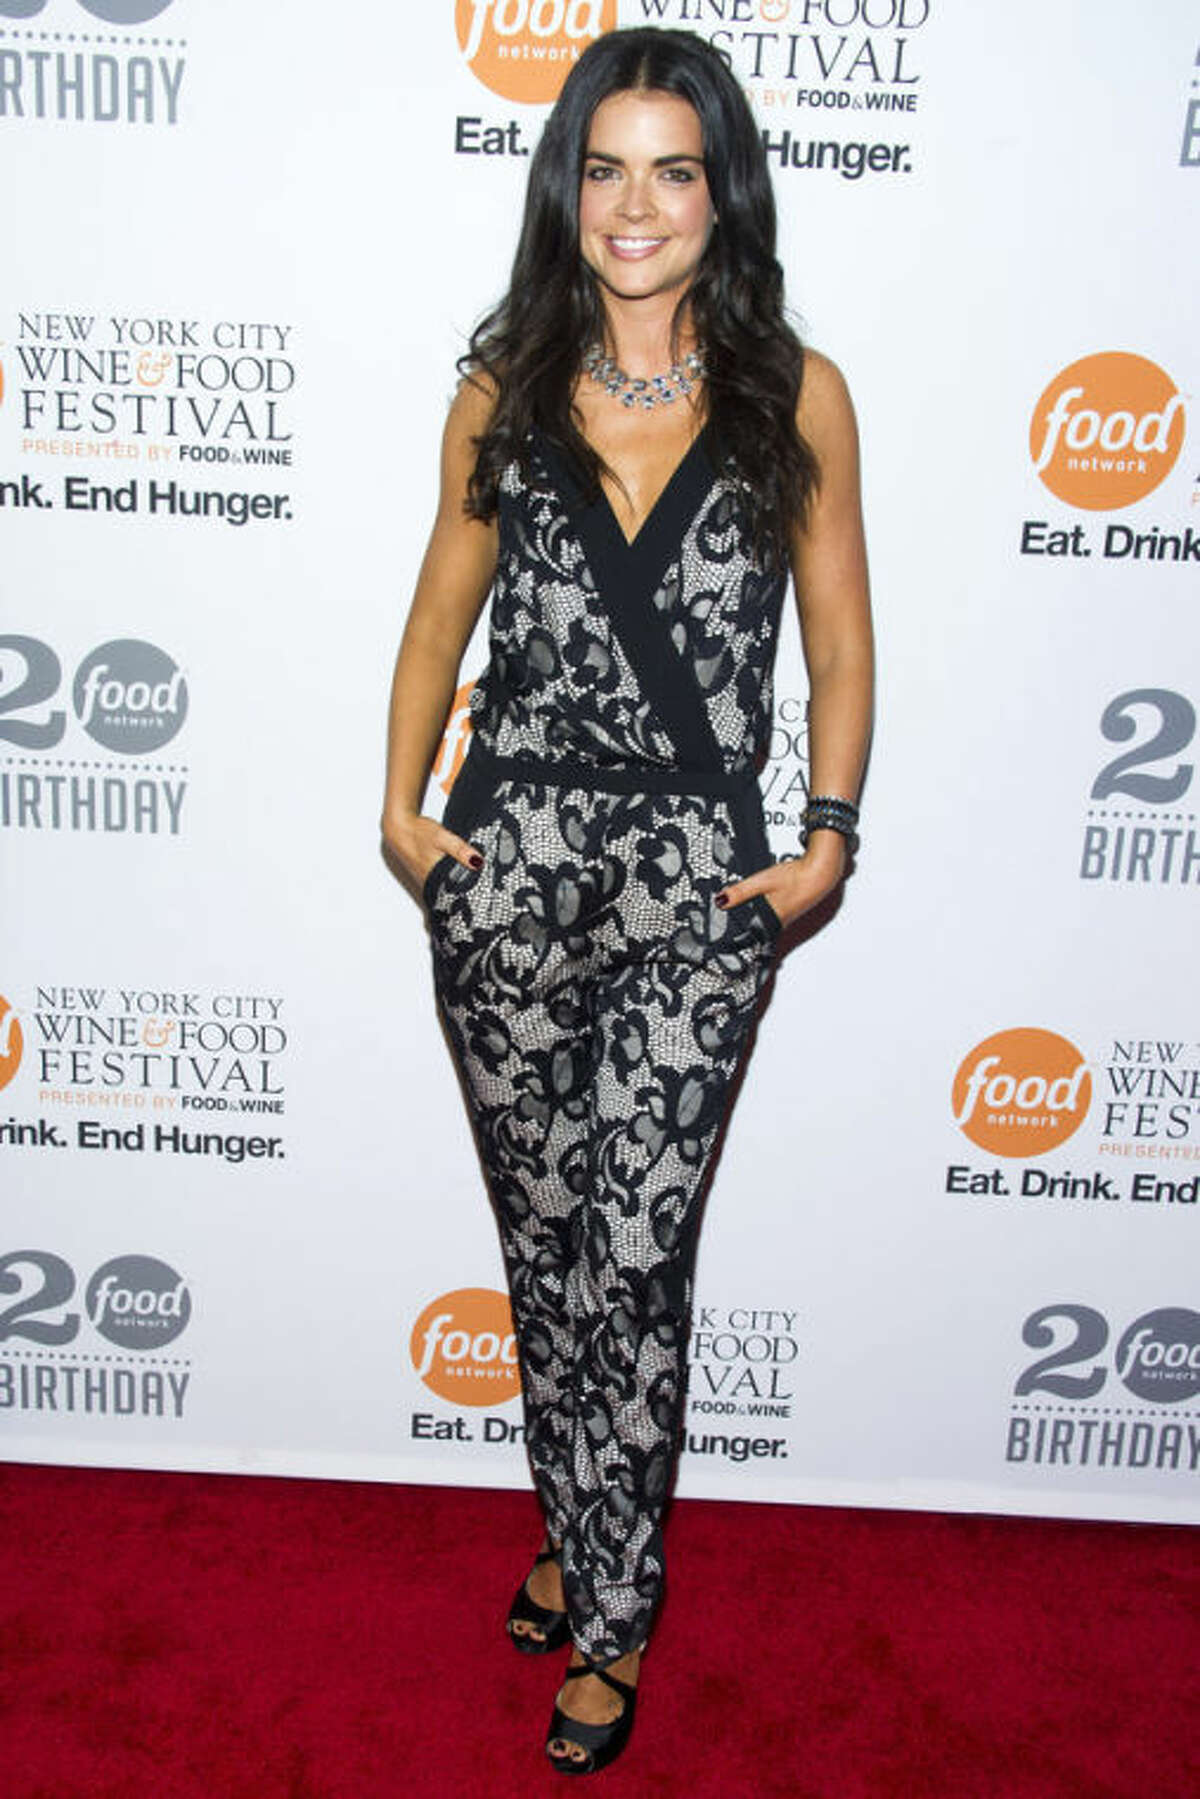 Katie Lee attends the Food Network's 20th birthday party on Thursday, Oct. 17, 2013, in New York. (Photo by Charles Sykes/Invision/AP)